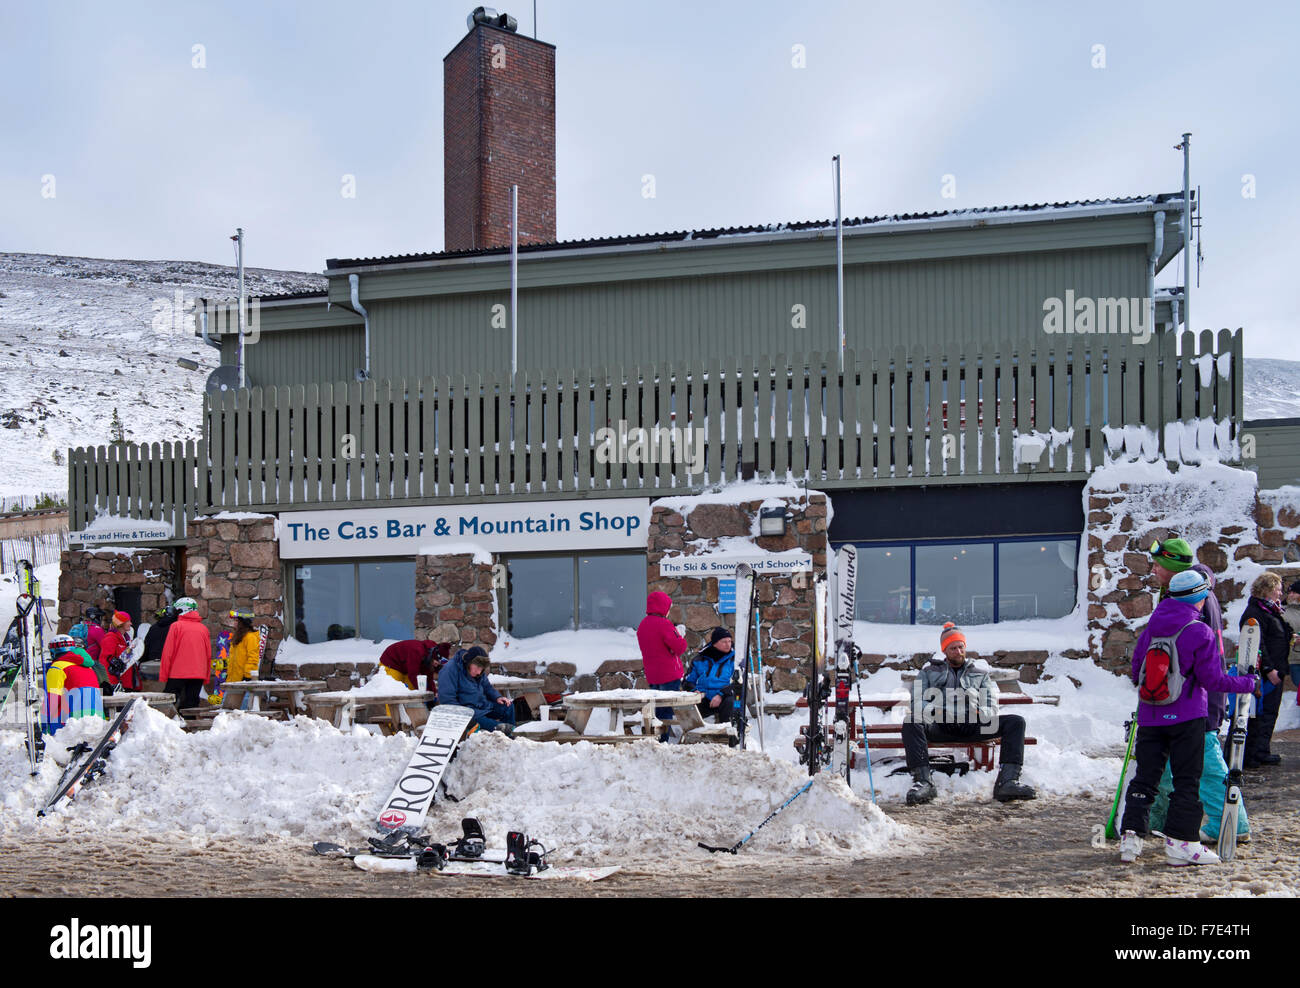 Skiers and snowboarders outside the Cas Bar and Mountain shop at Cairngorm Mountain Ski Centre,  Scottish Highland, - Stock Image